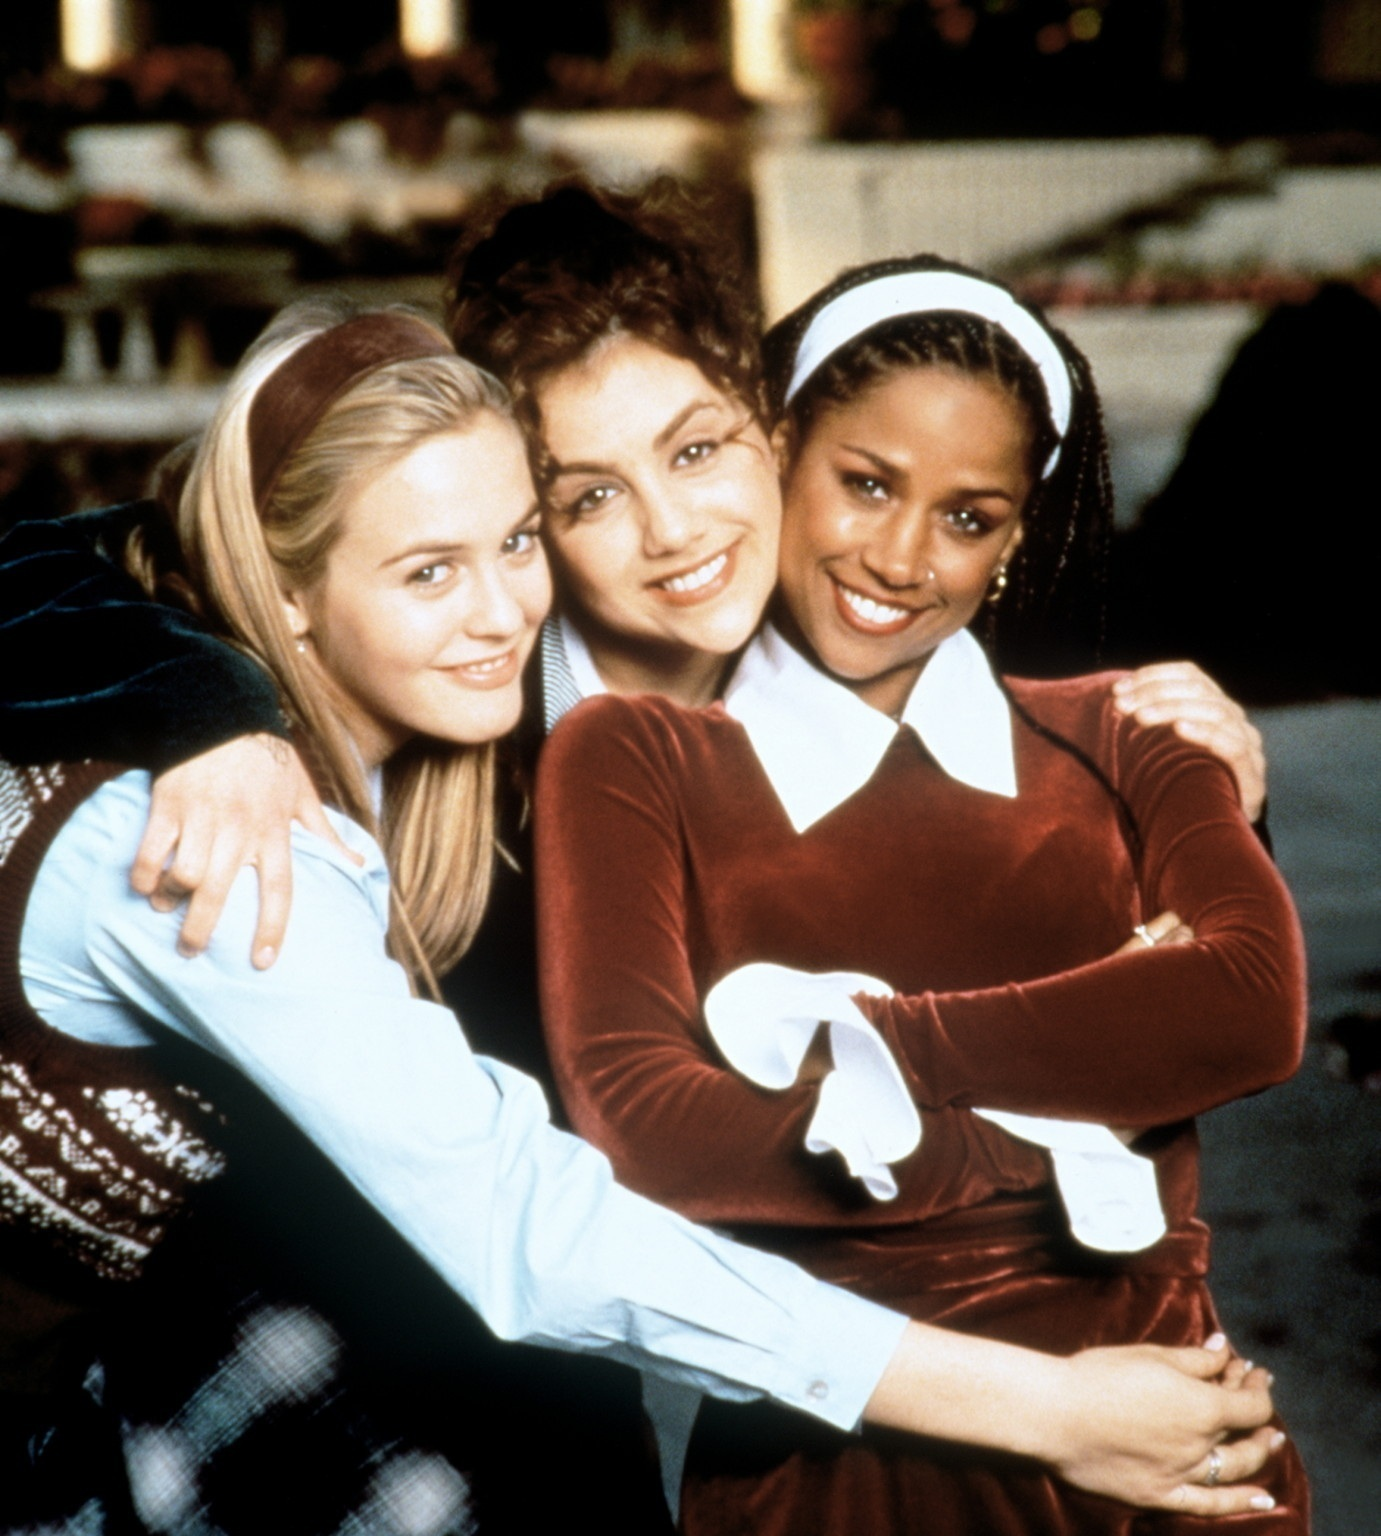 movies top download clueless movies in italy